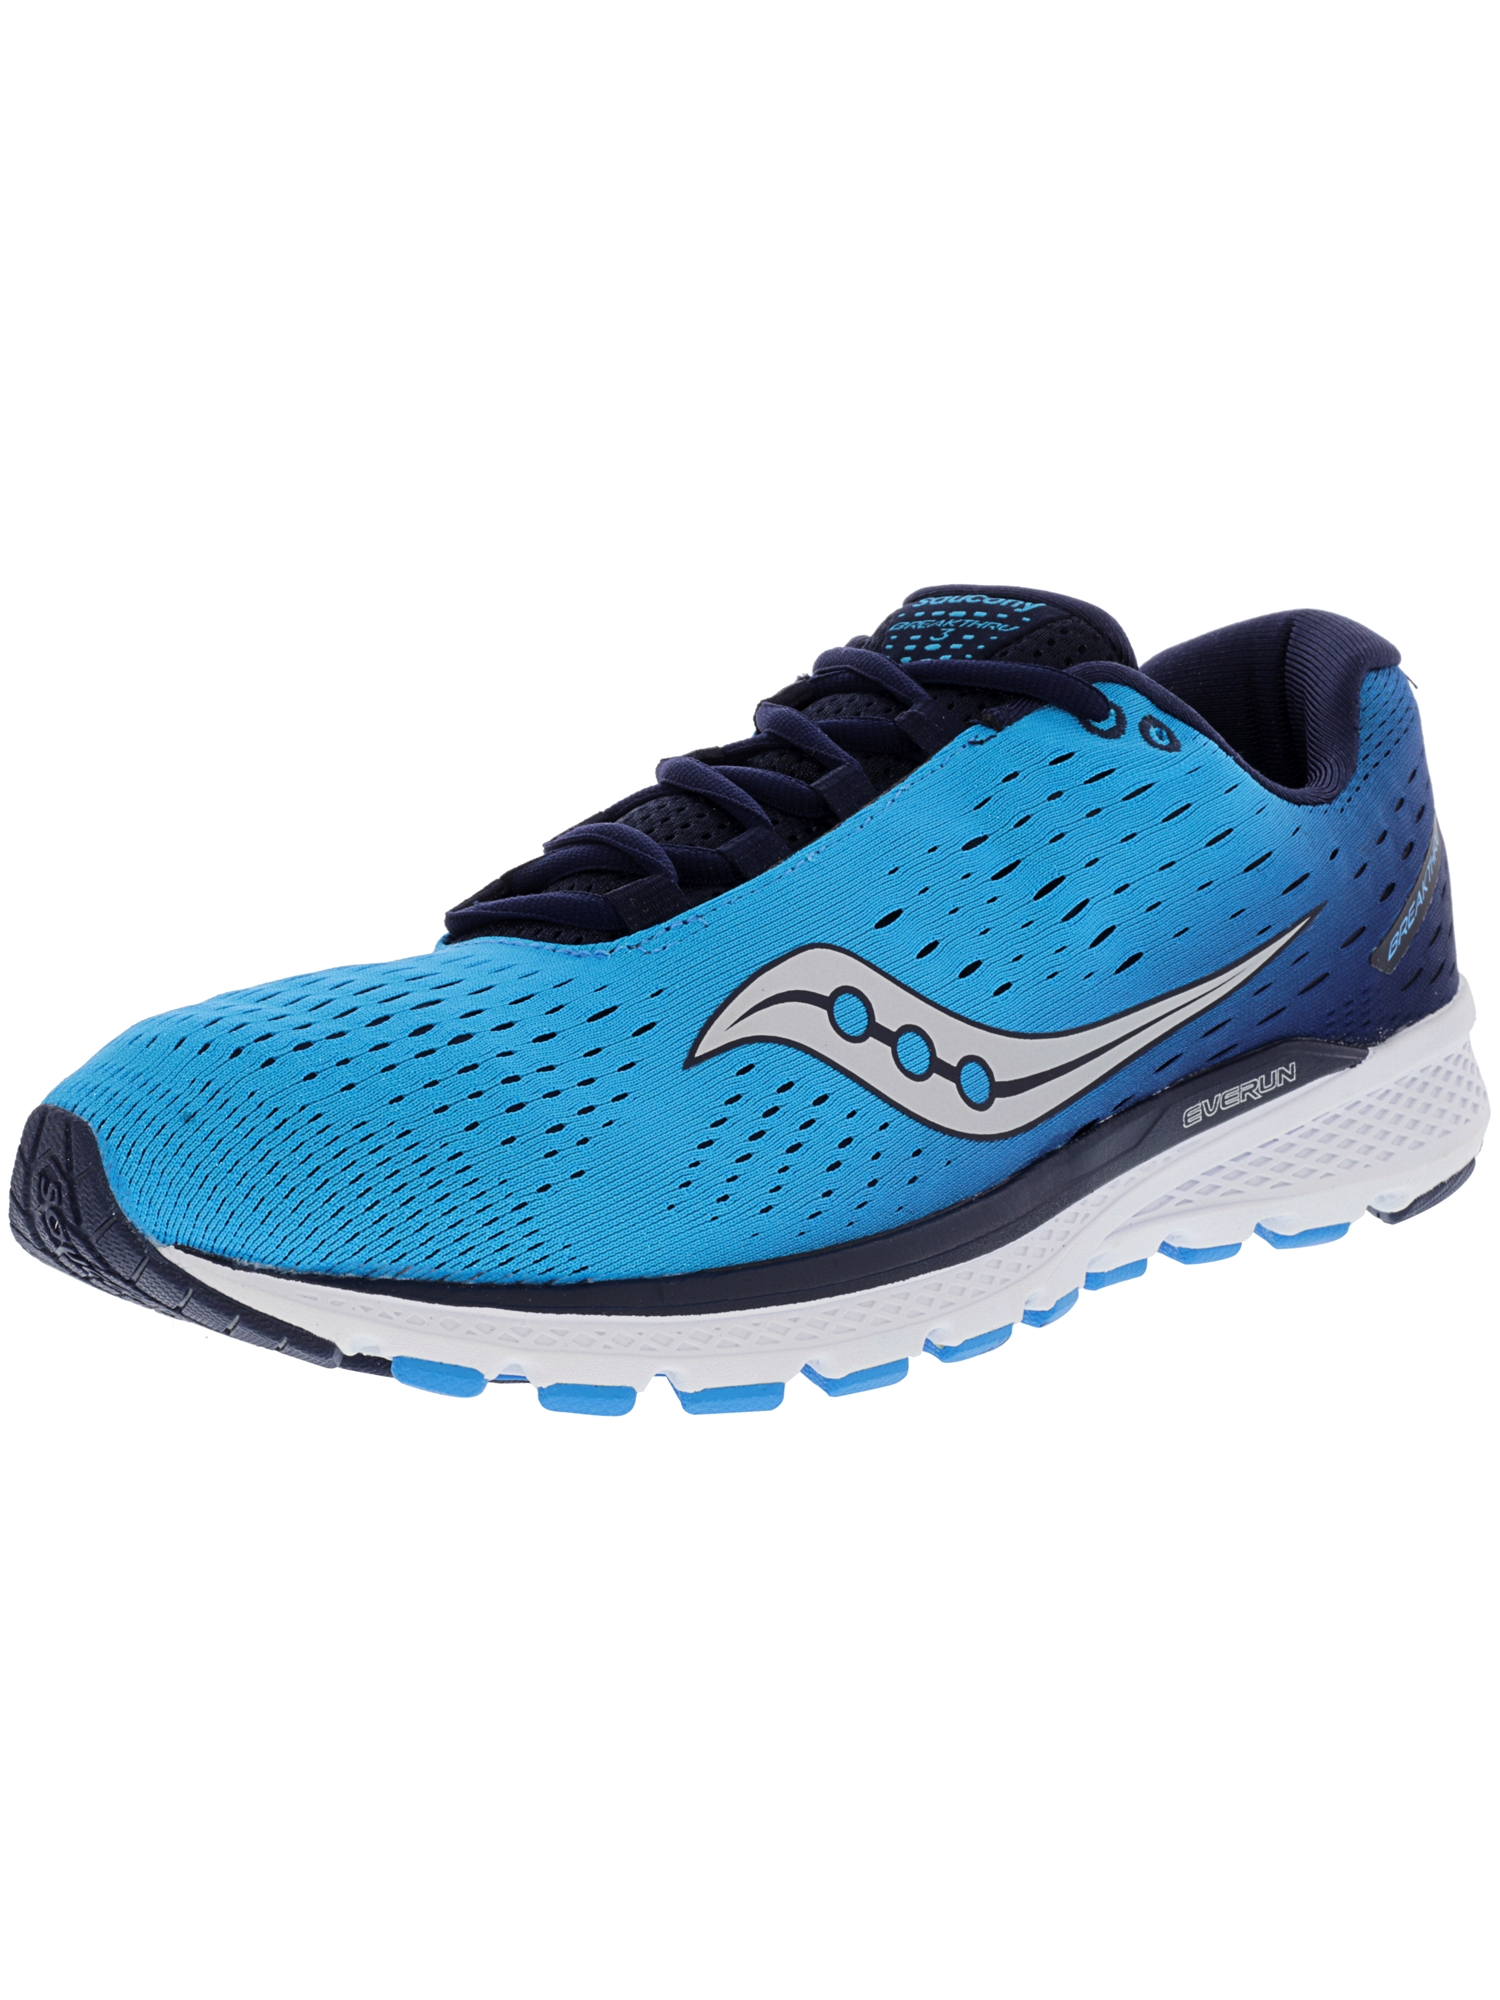 Saucony Men's Breakthru 3 Blue / Navy Ankle-High Running Shoe - 9.5M